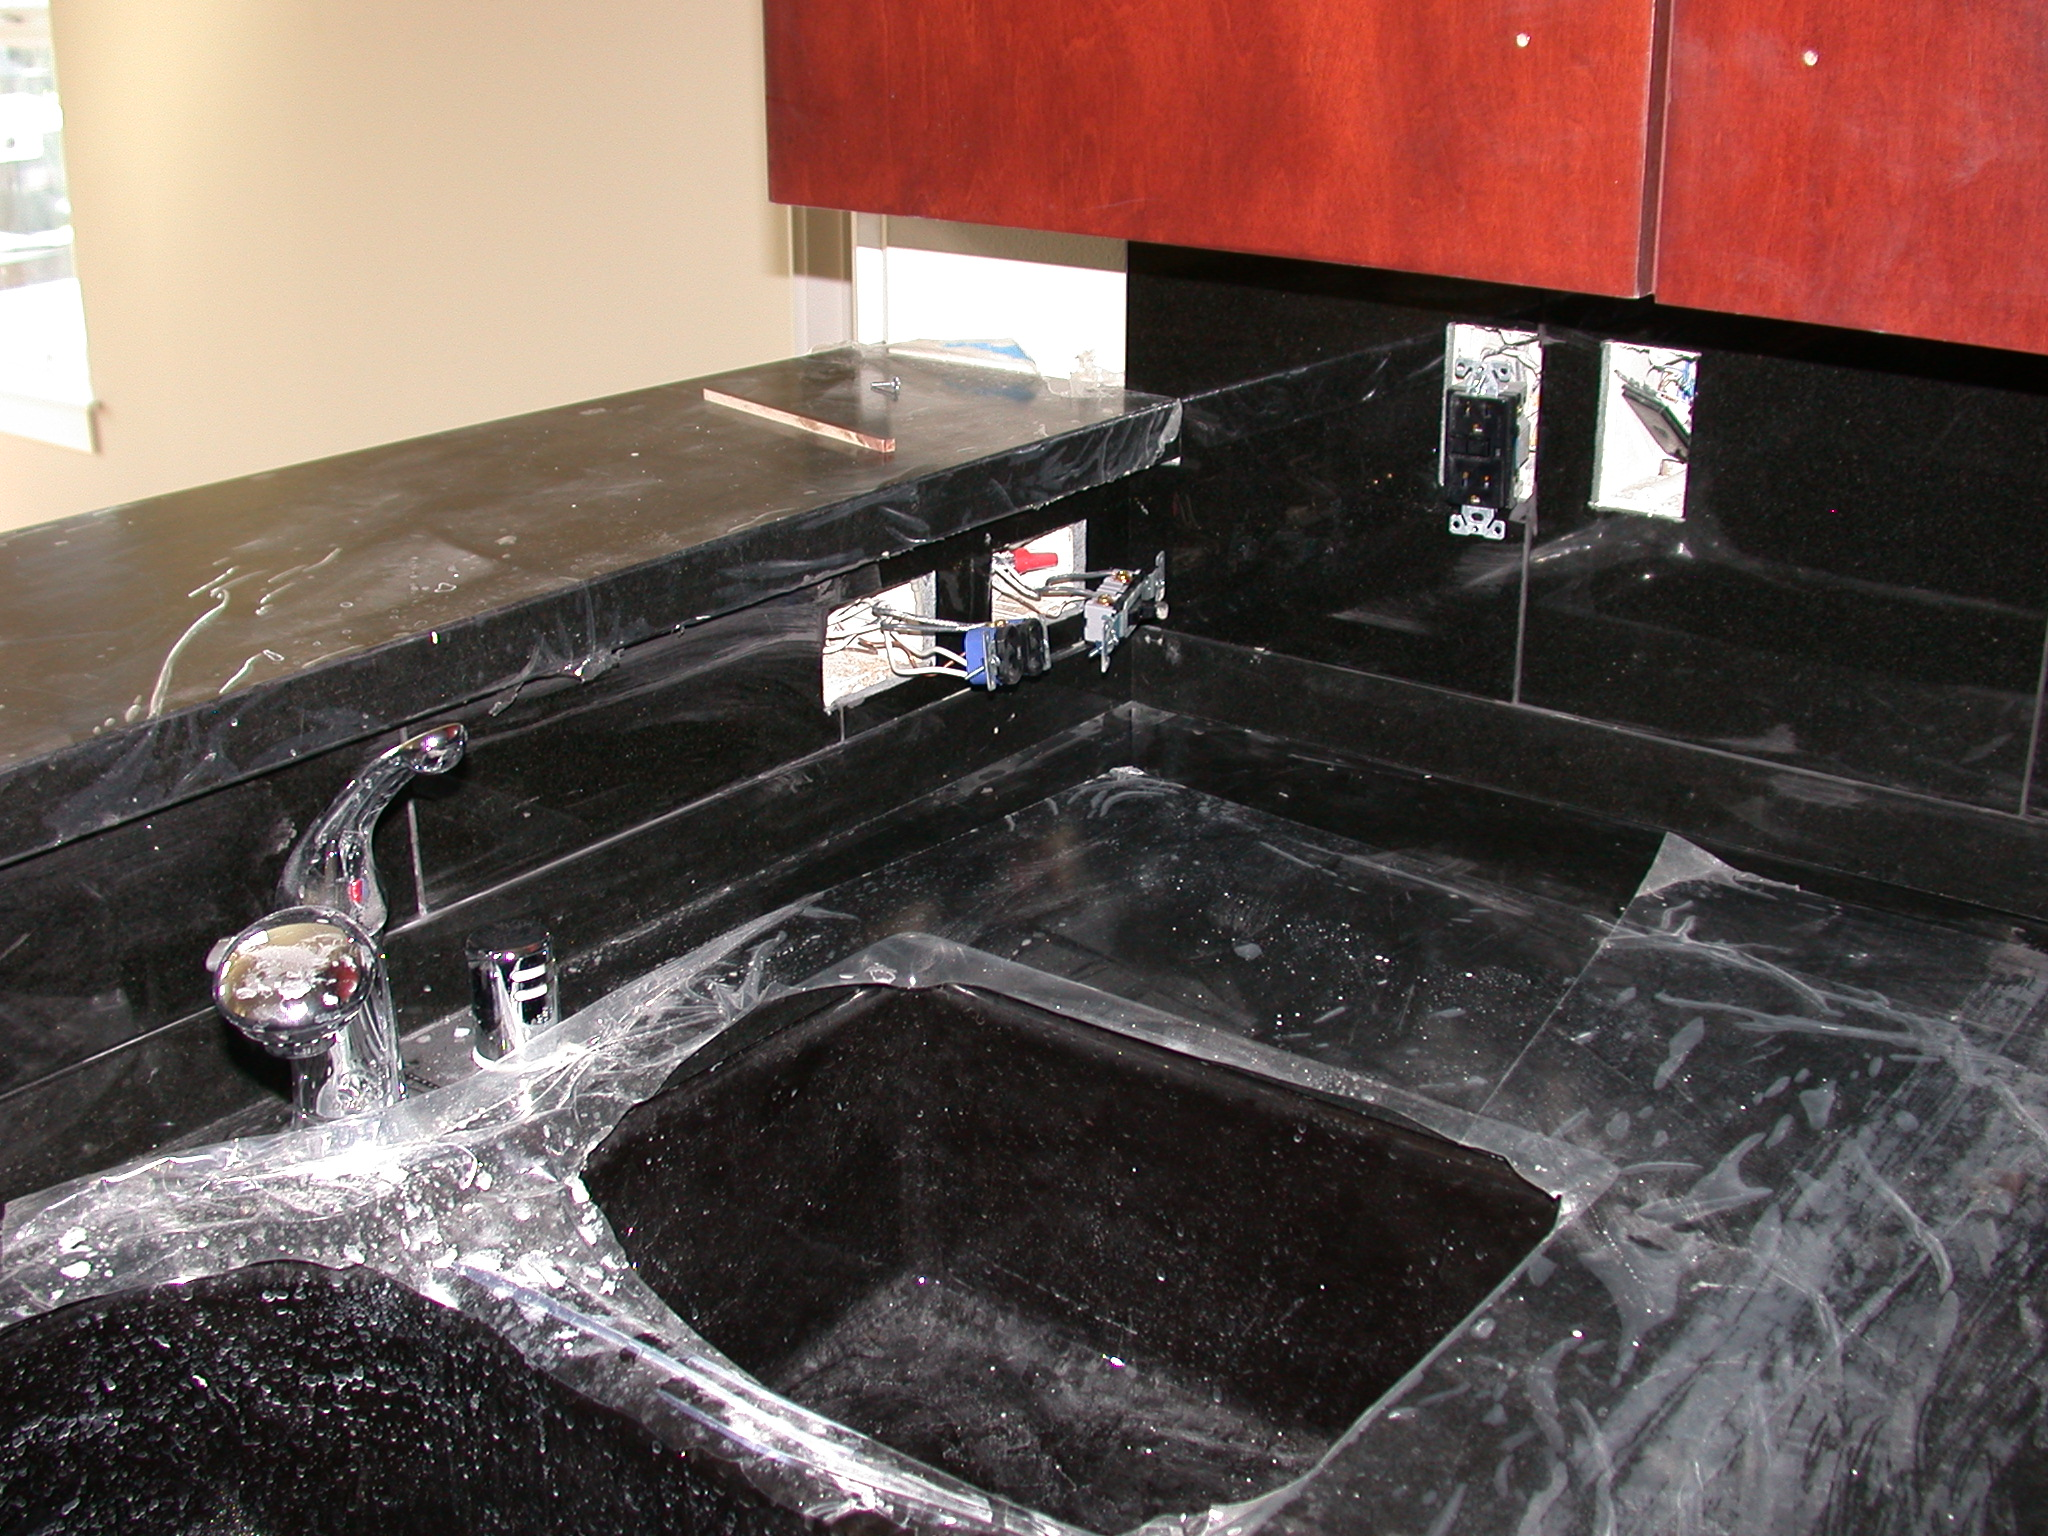 Sink Area in Kitchen of Moms Condominium